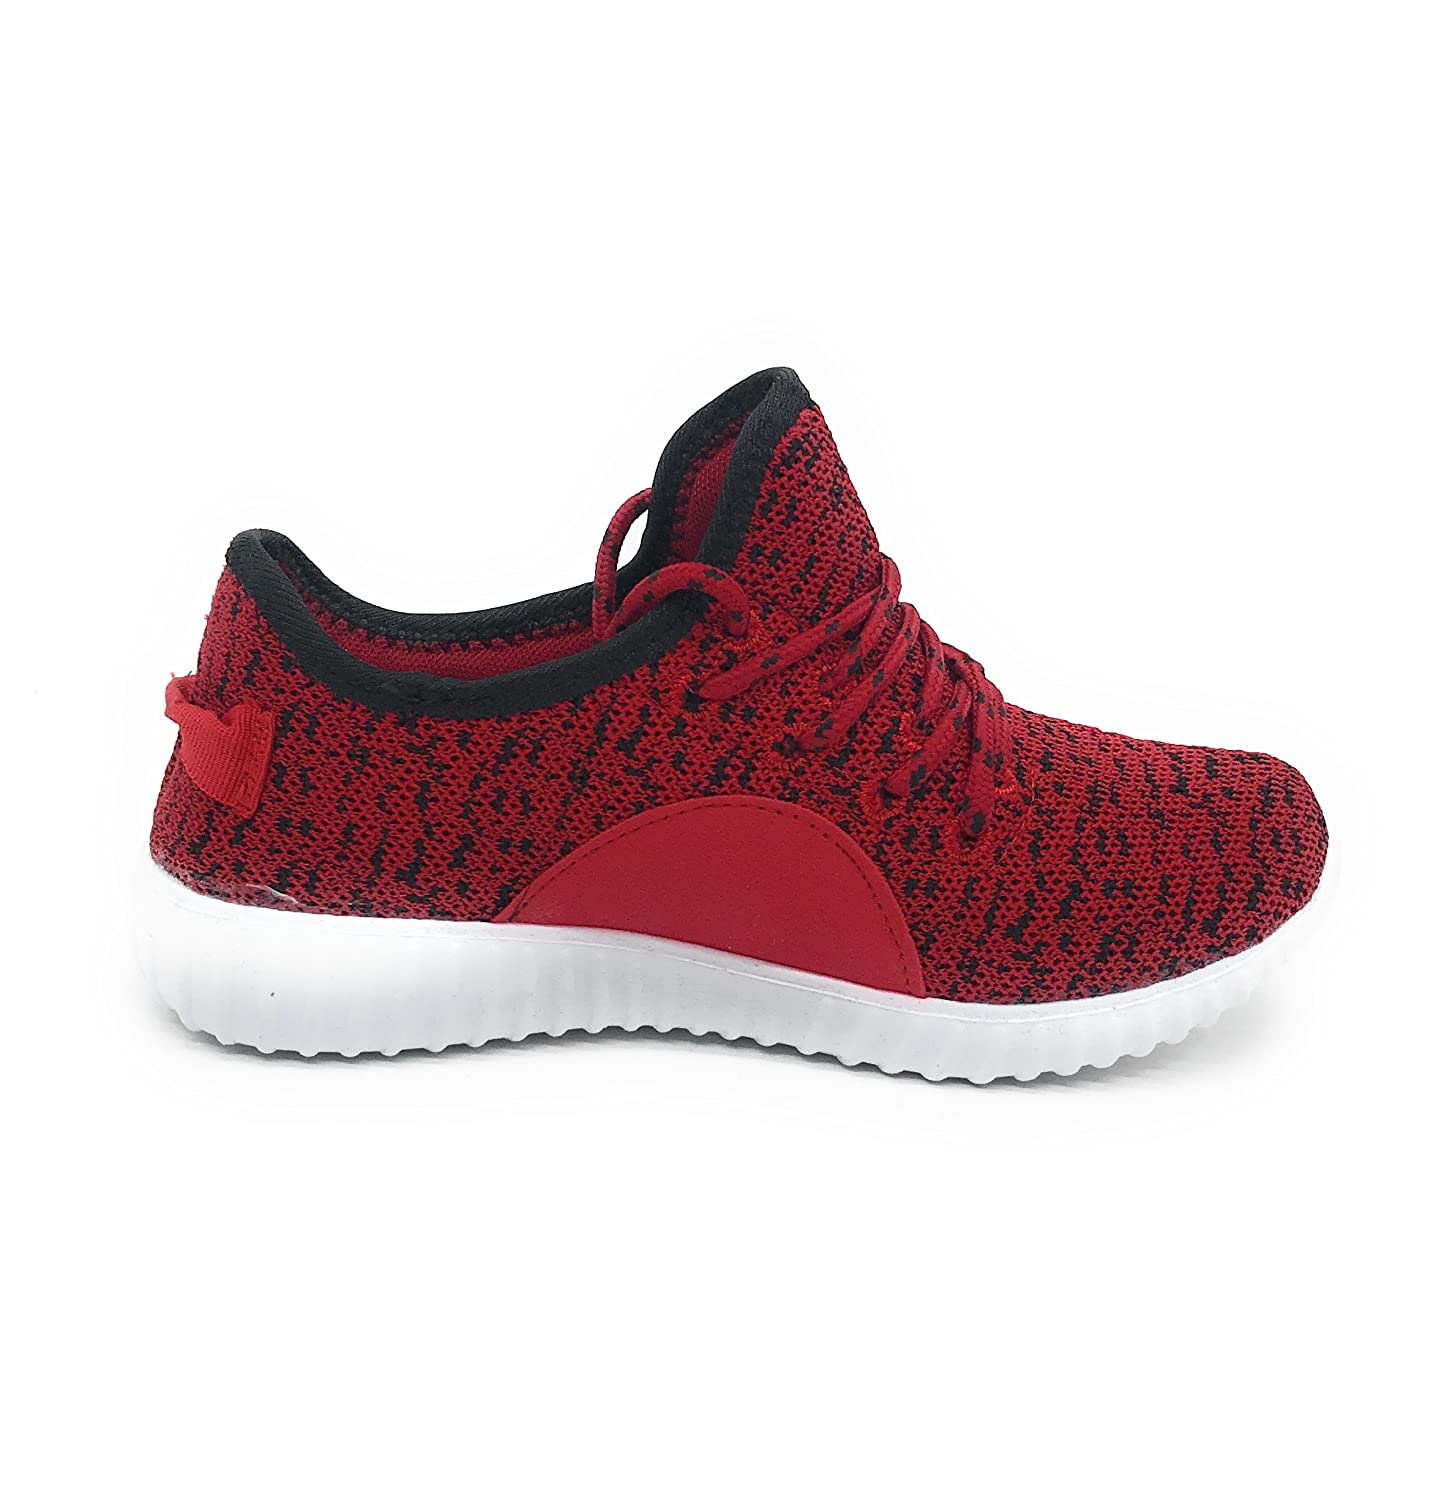 Blue Berry EASY21 Women Casual Fashion Sneakers Breathable Athletic Sports Light Weight Shoes B077GKTPJT 8 B(M) US|Red/Black